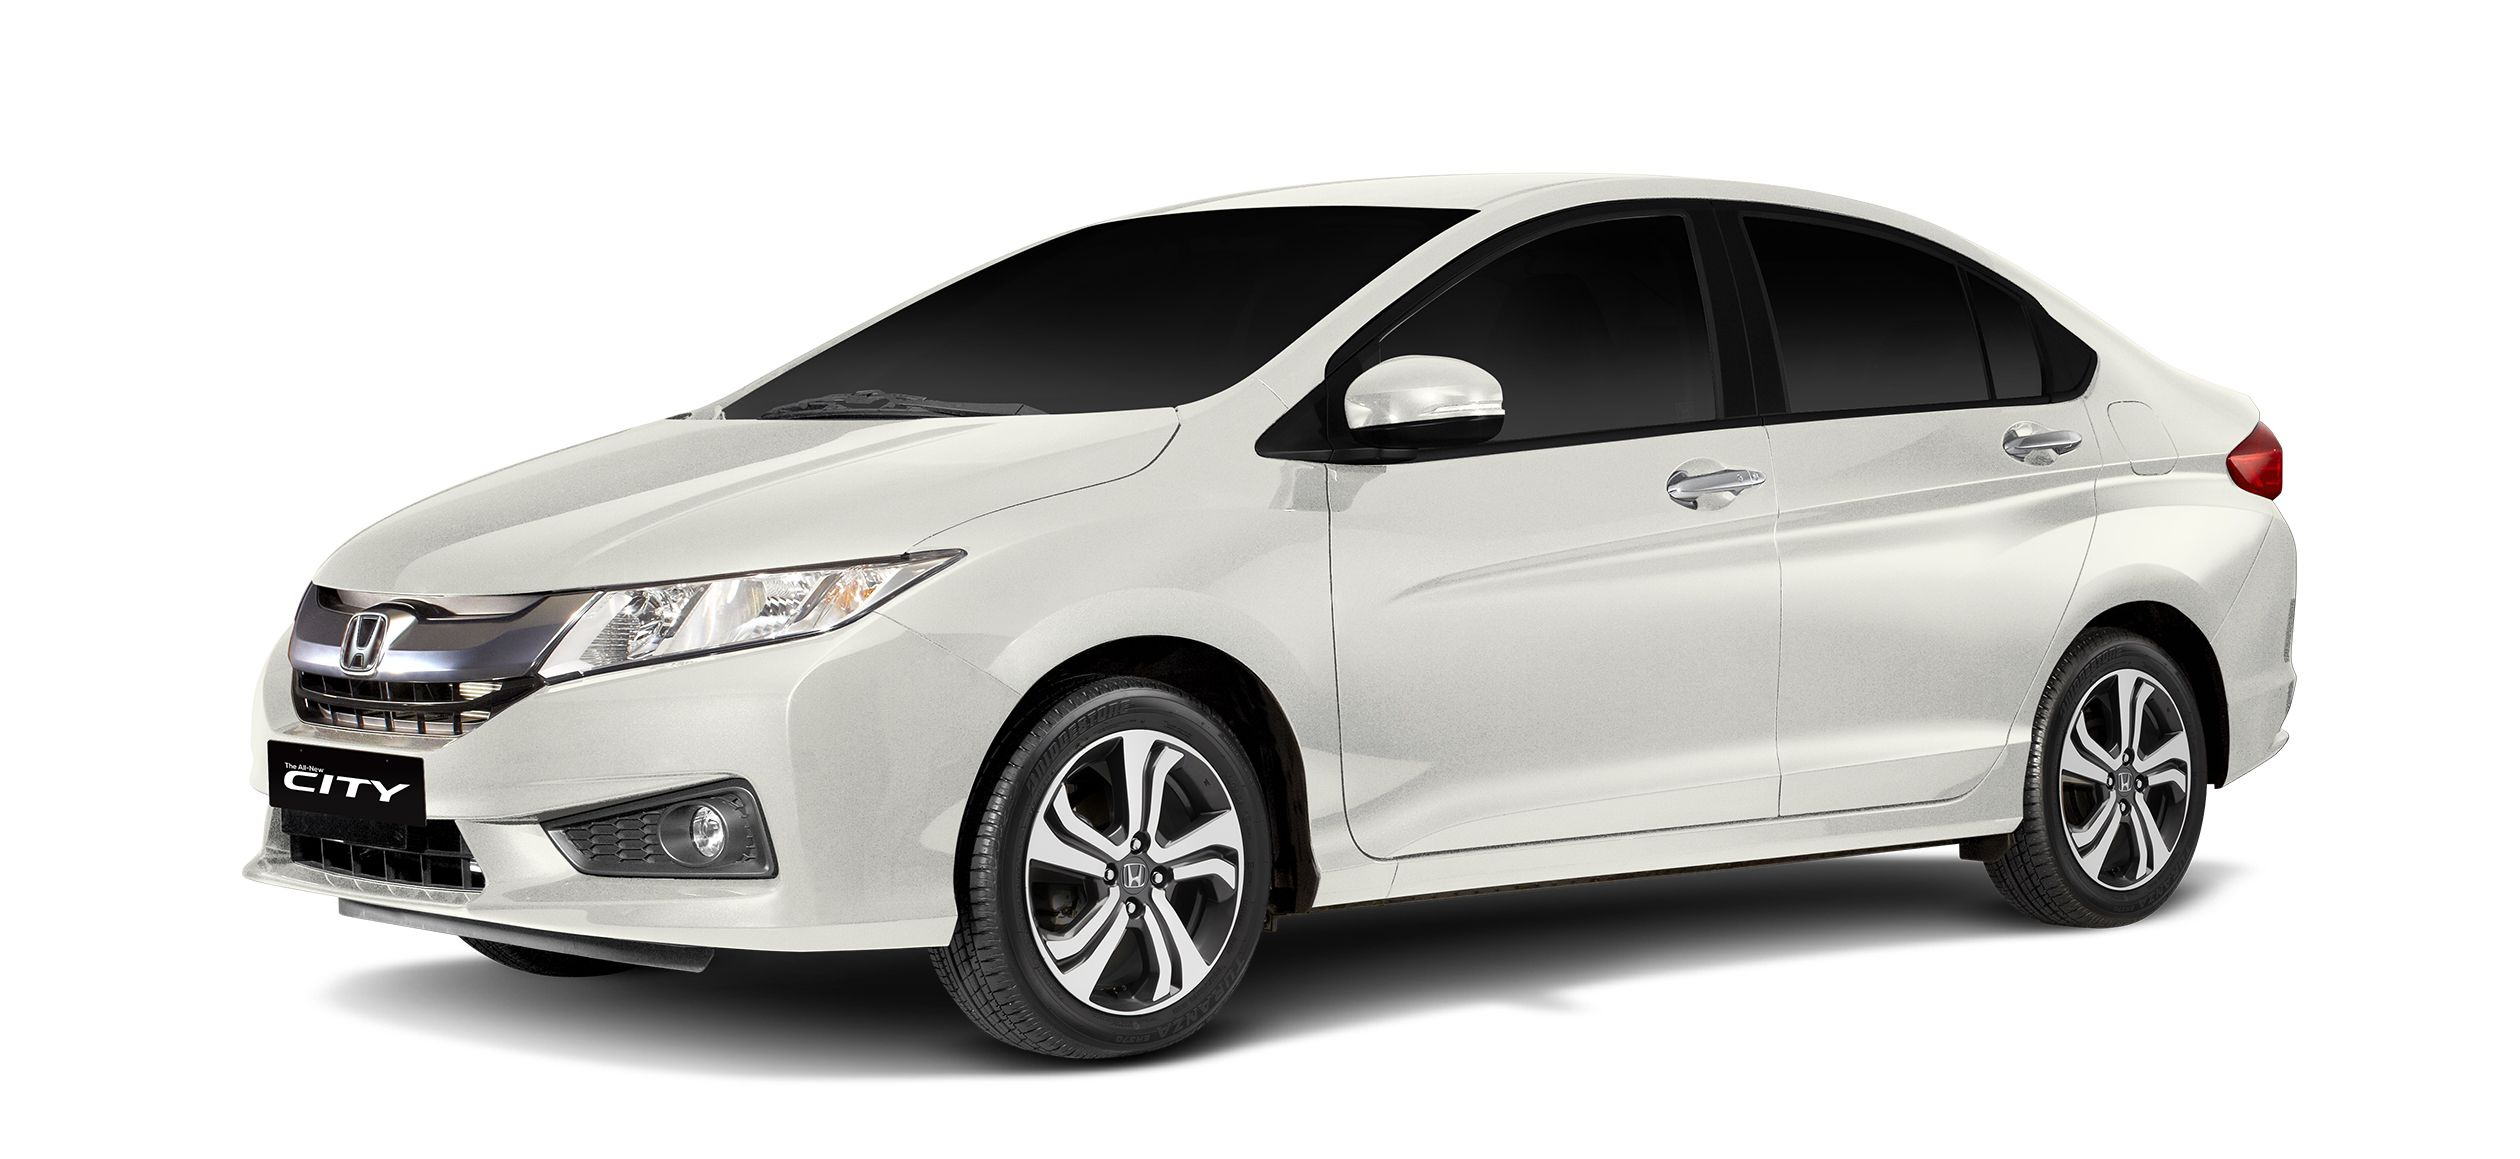 Honda Cars Philippines Price List Auto Search Philippines 2016